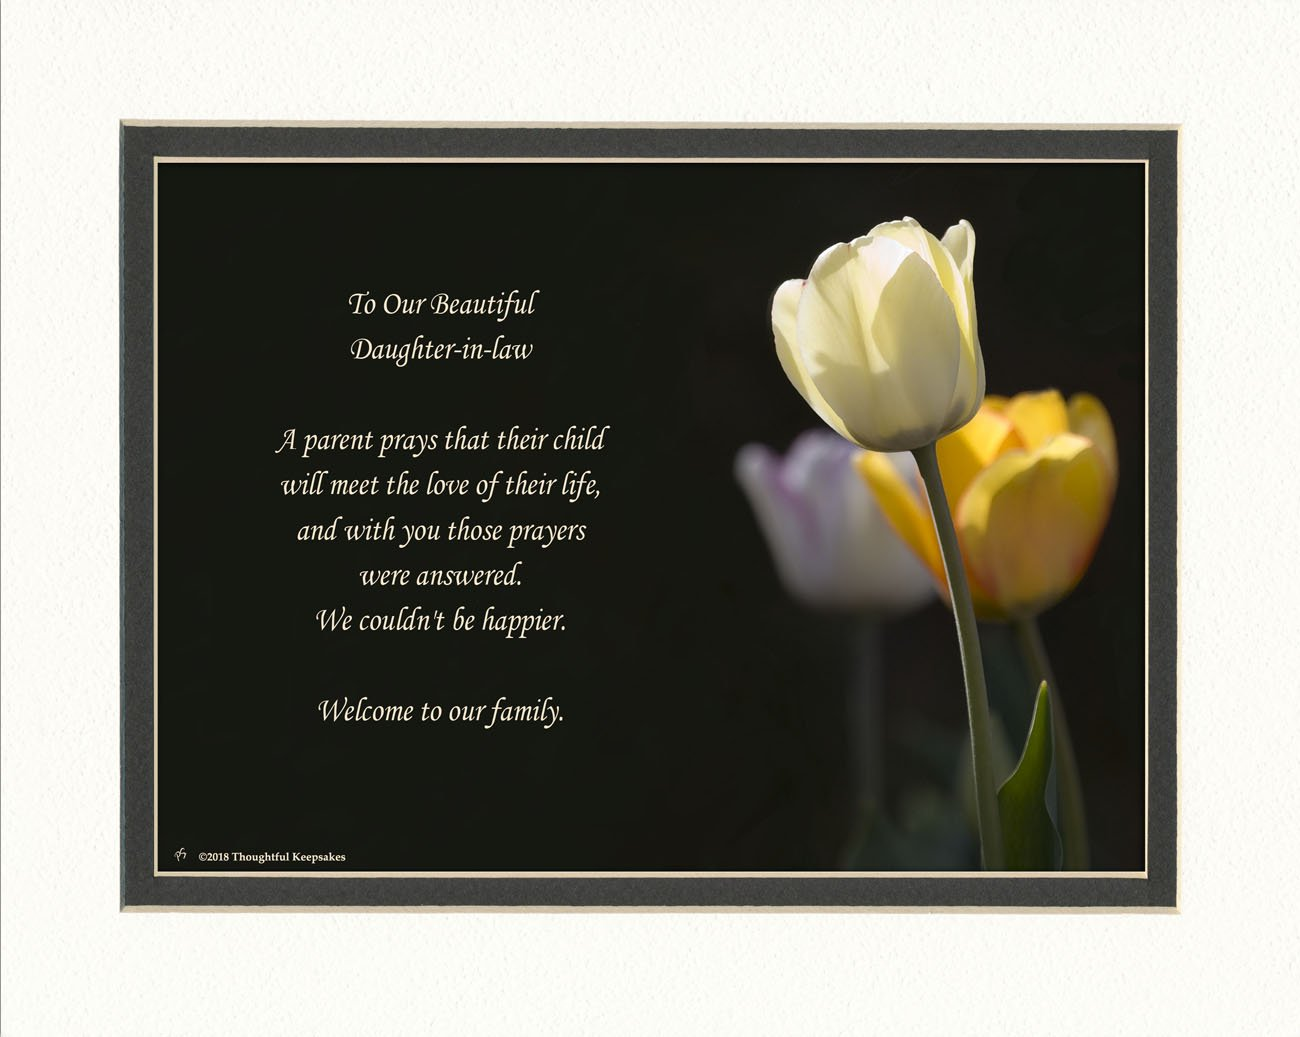 Daughter in Law Gift with Welcome to the Family Poem. White Tulip Photo, 8x10 Double Matted. Special Daughter-in-Law Wedding, Bridal Shower Gift. Great Christmas, Birthday Gifts.